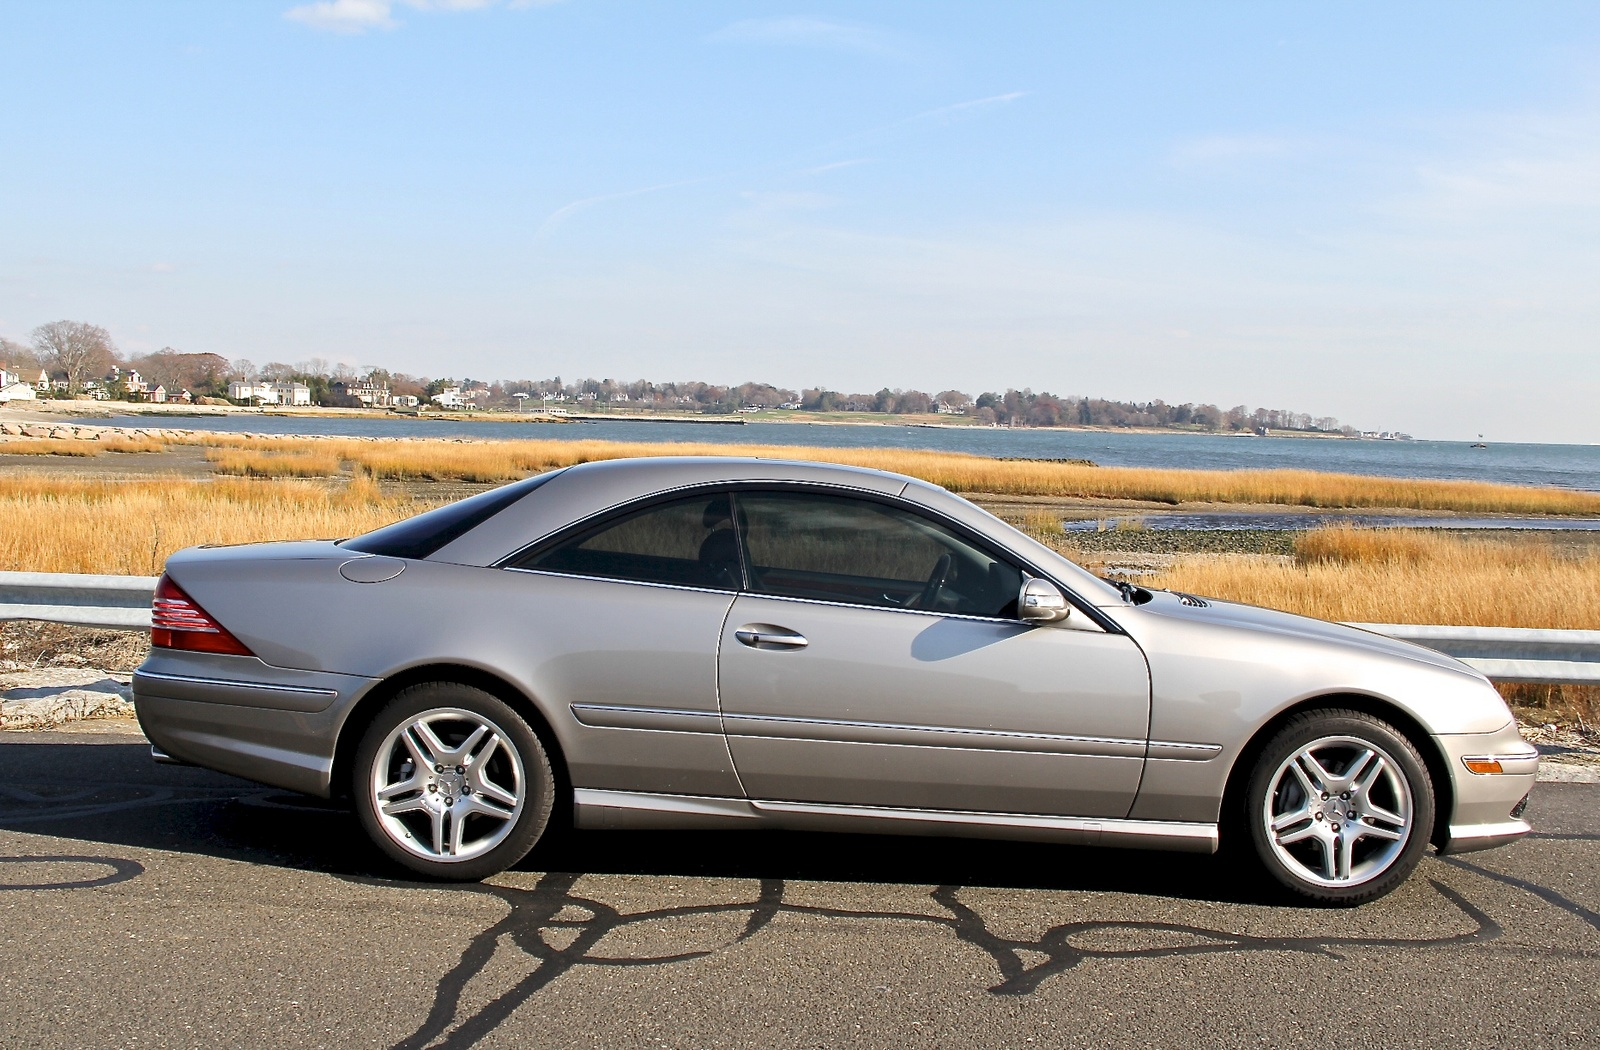 2006 mercedes benz cl class pictures cargurus for Mercedes benz c class 2006 price